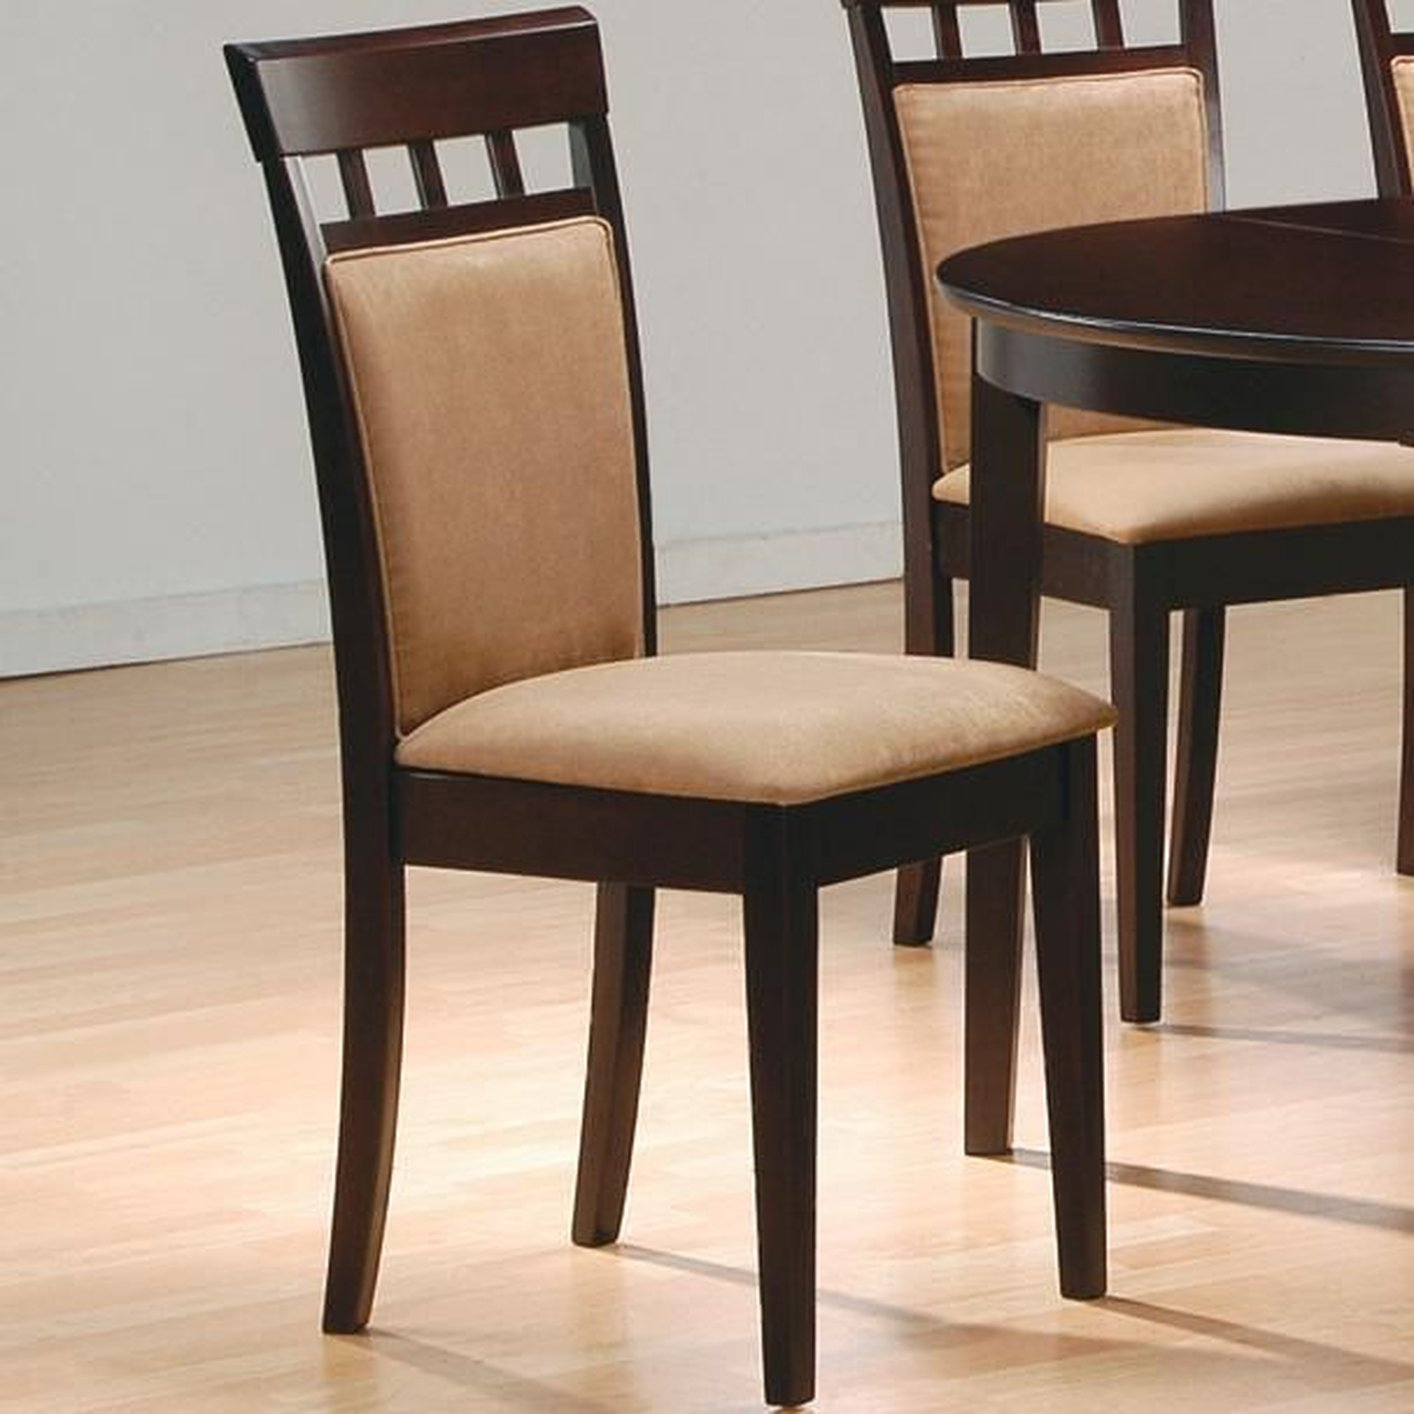 Coaster 100773 Brown Wood Dining Chair  StealASofa